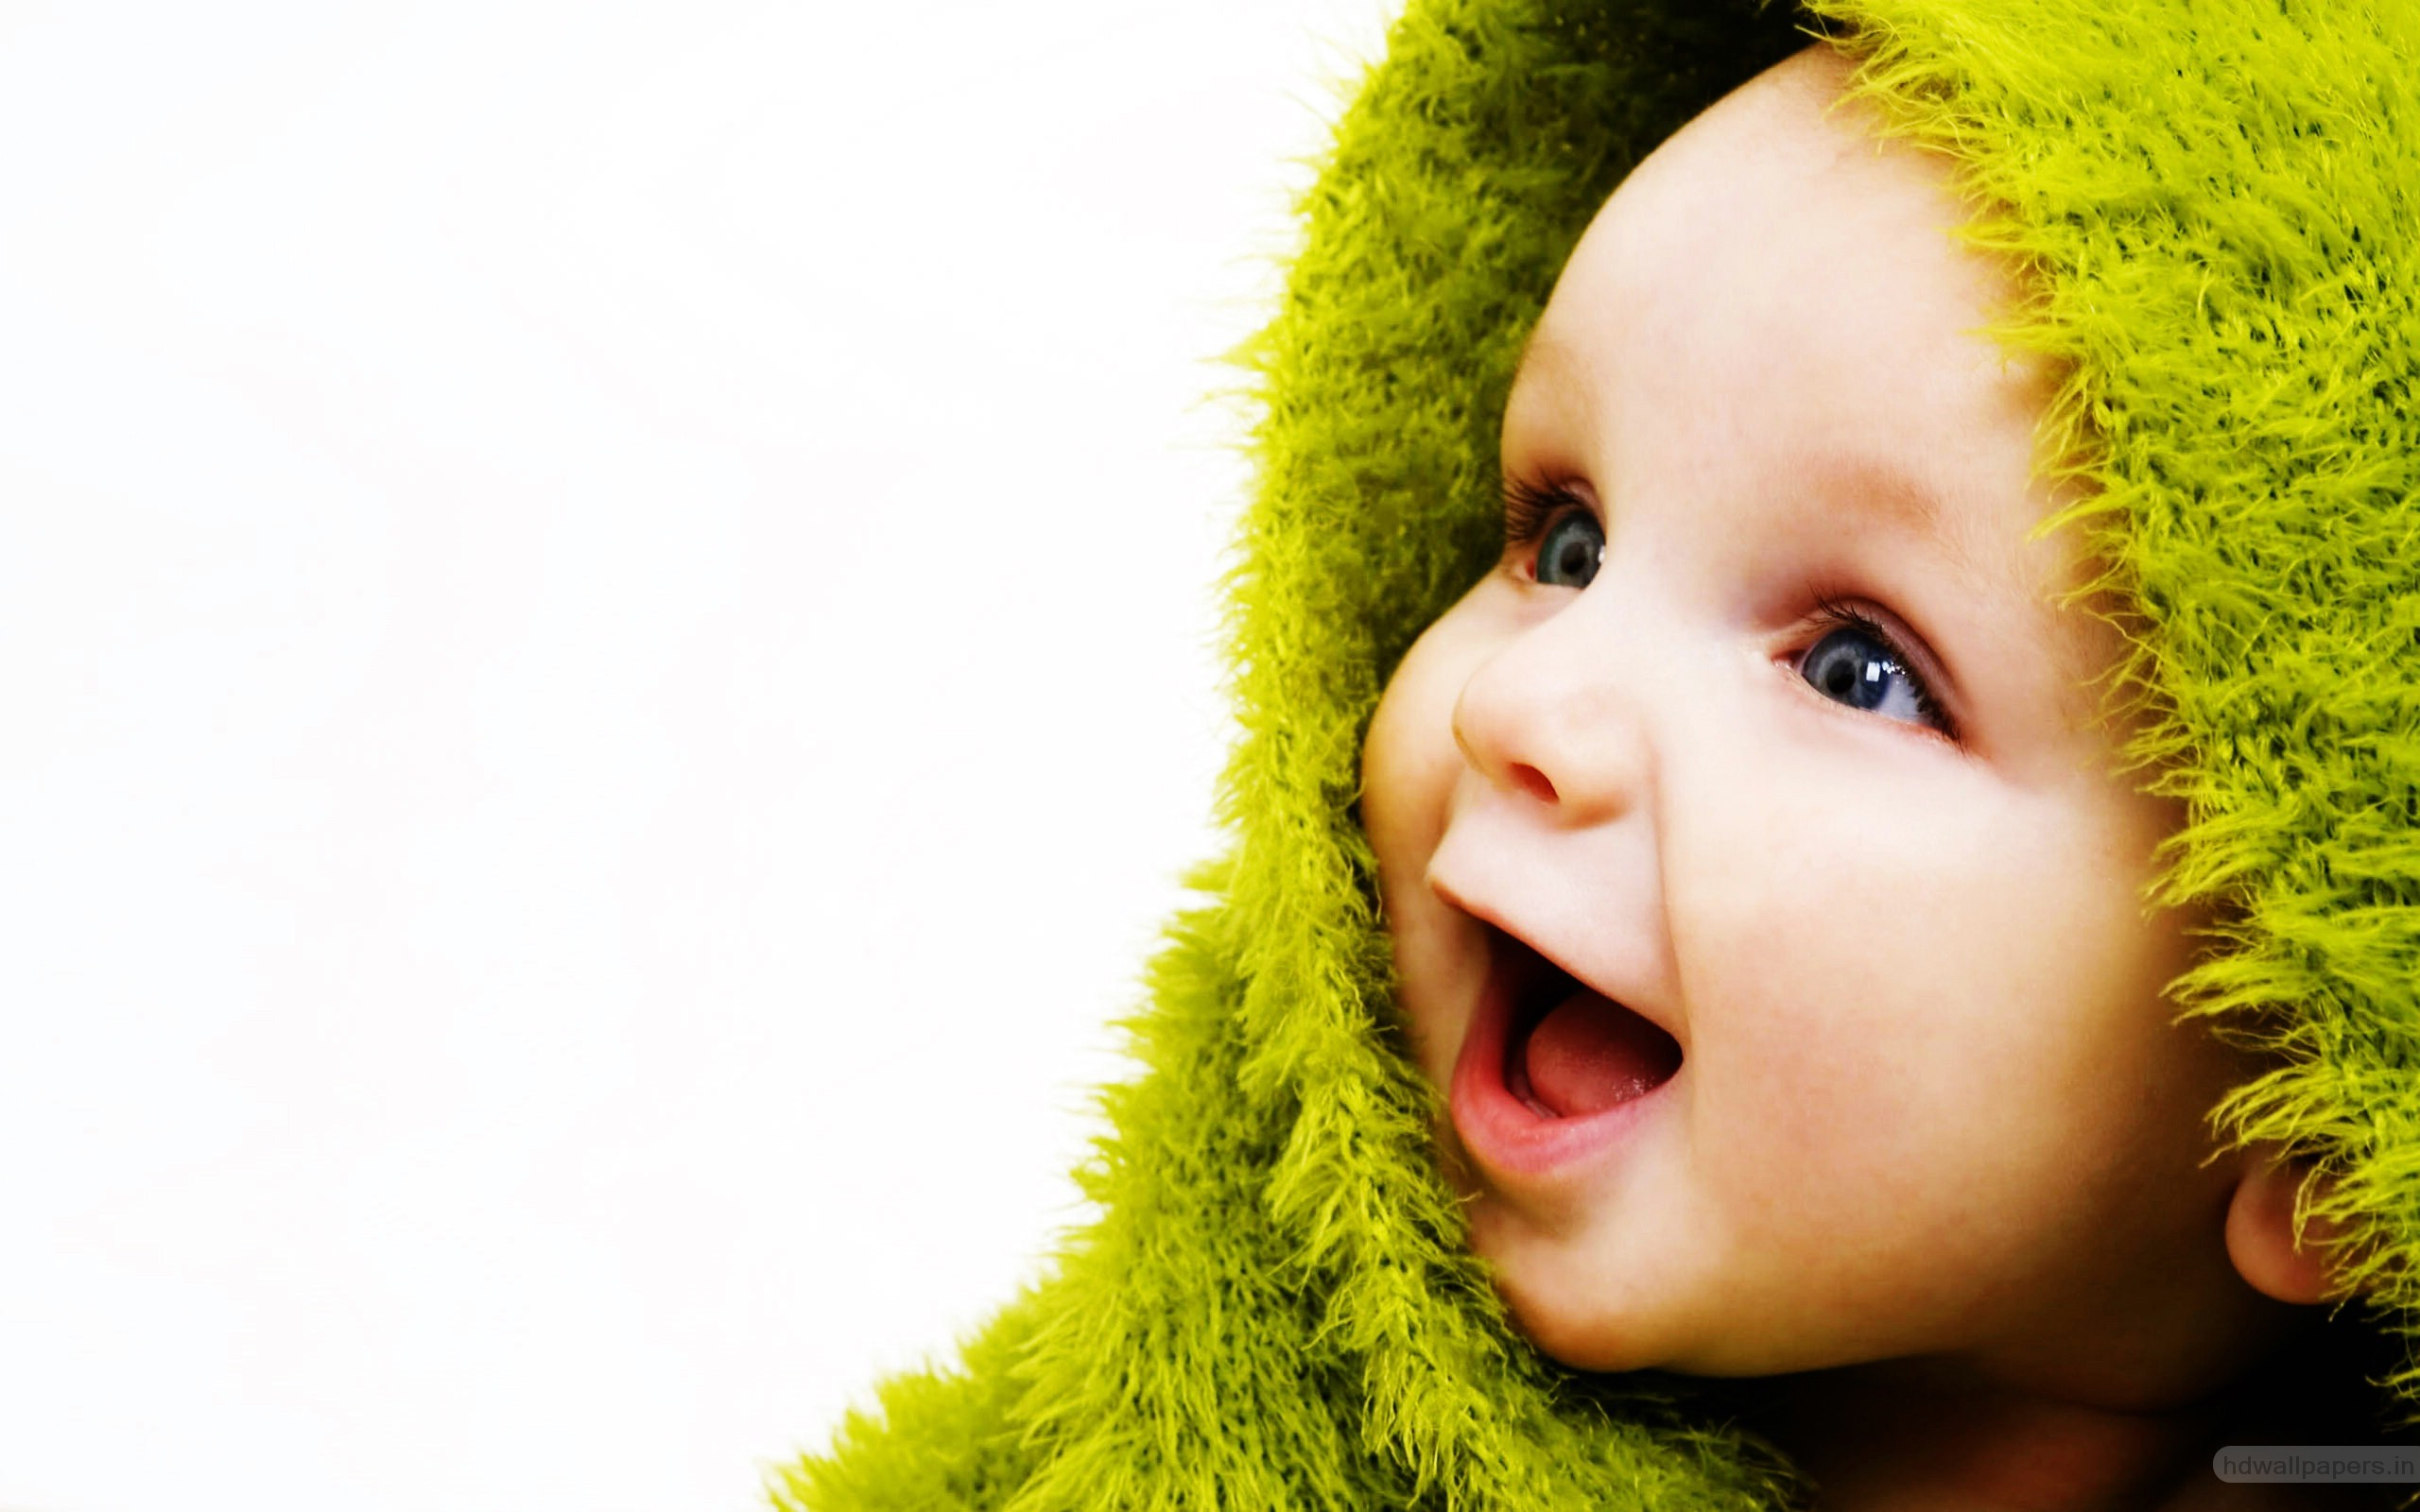 Cute Small Baby with Smile in Green Wallpapers